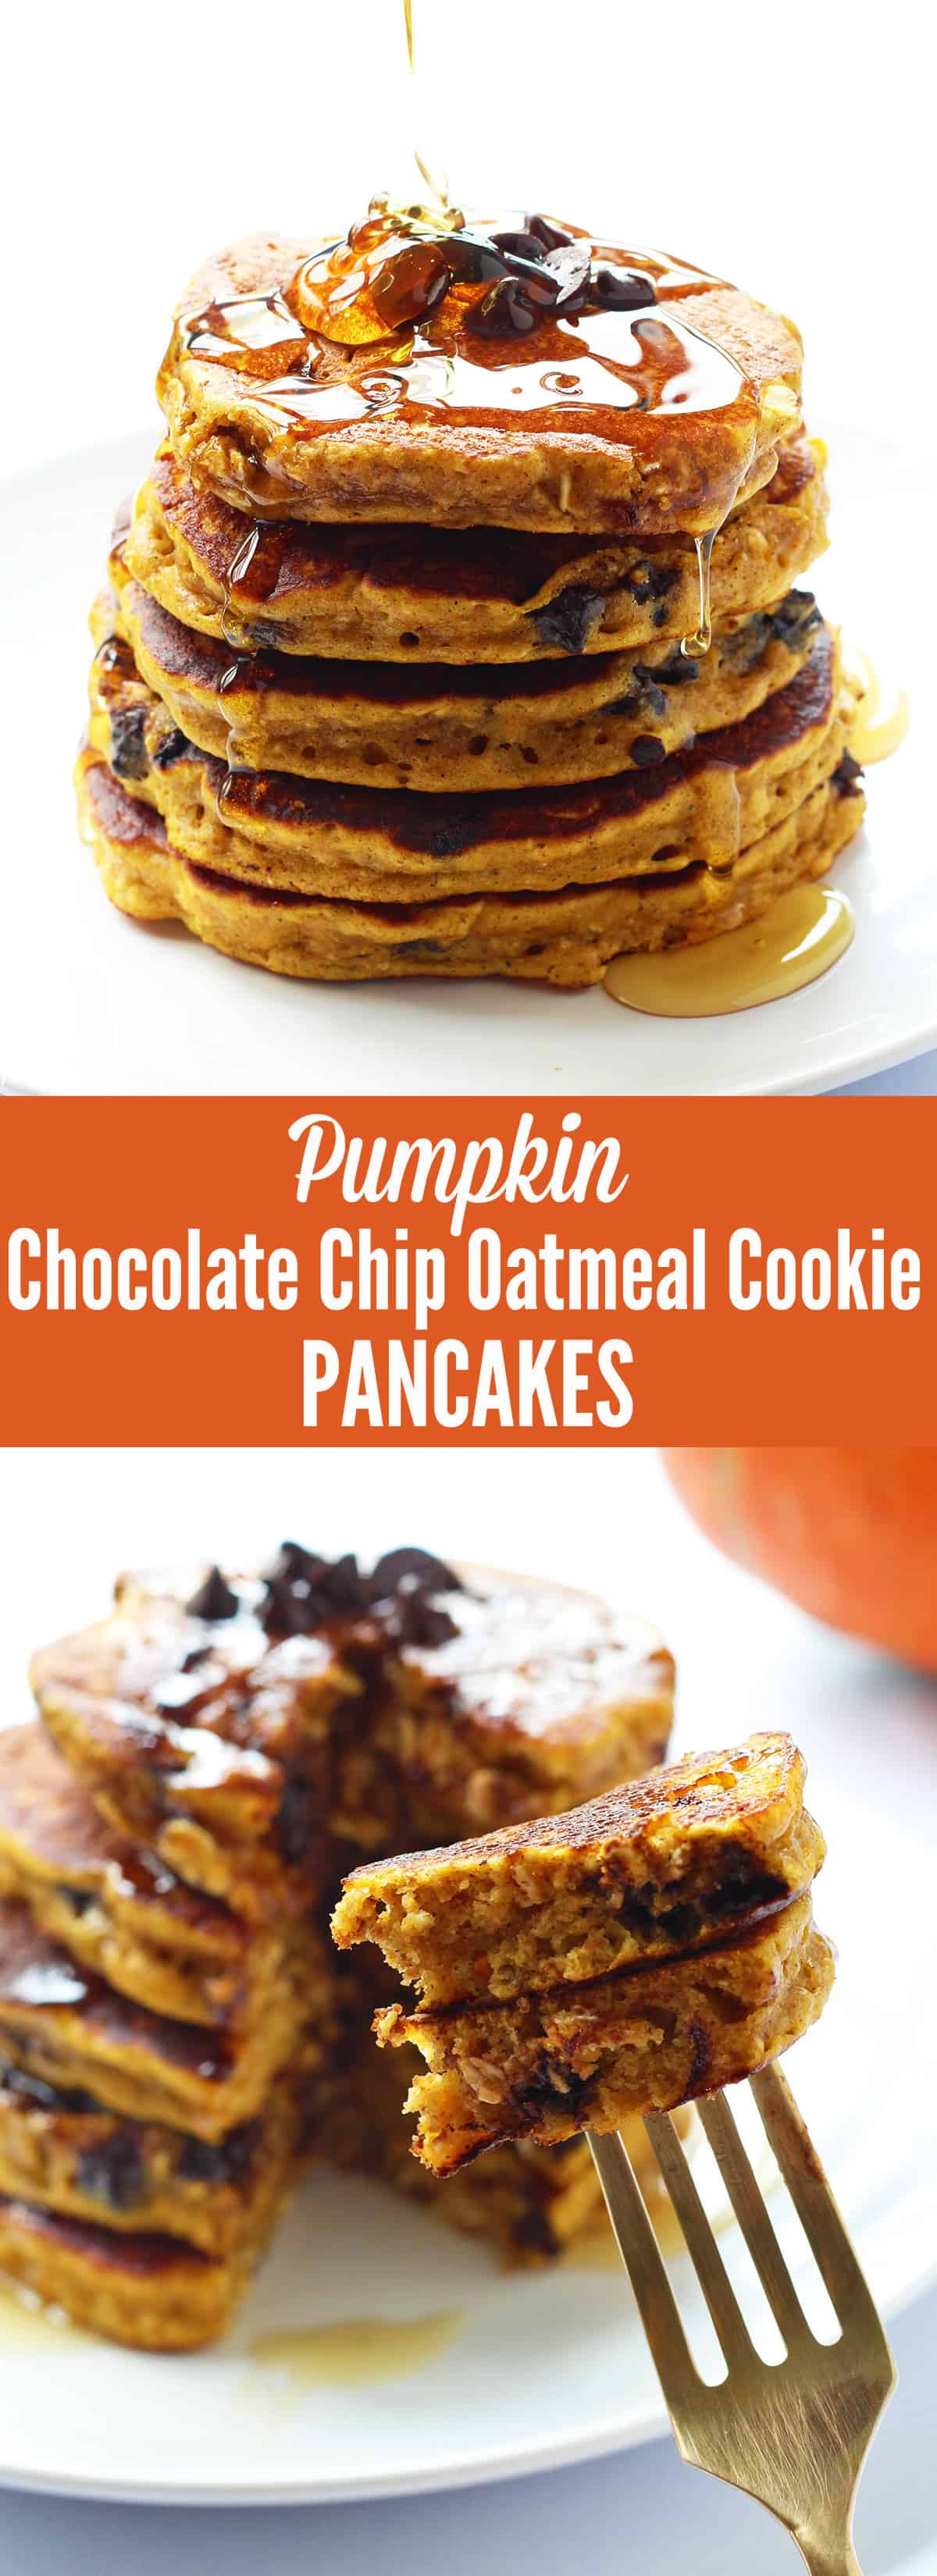 Pumpkin Chocolate Chip Oatmeal Cookie Pancakes are whole wheat pumpkin pancakes that taste just like a chocolate chip oatmeal cookie. They are easily whipped up in the blender and use no refined sugar.